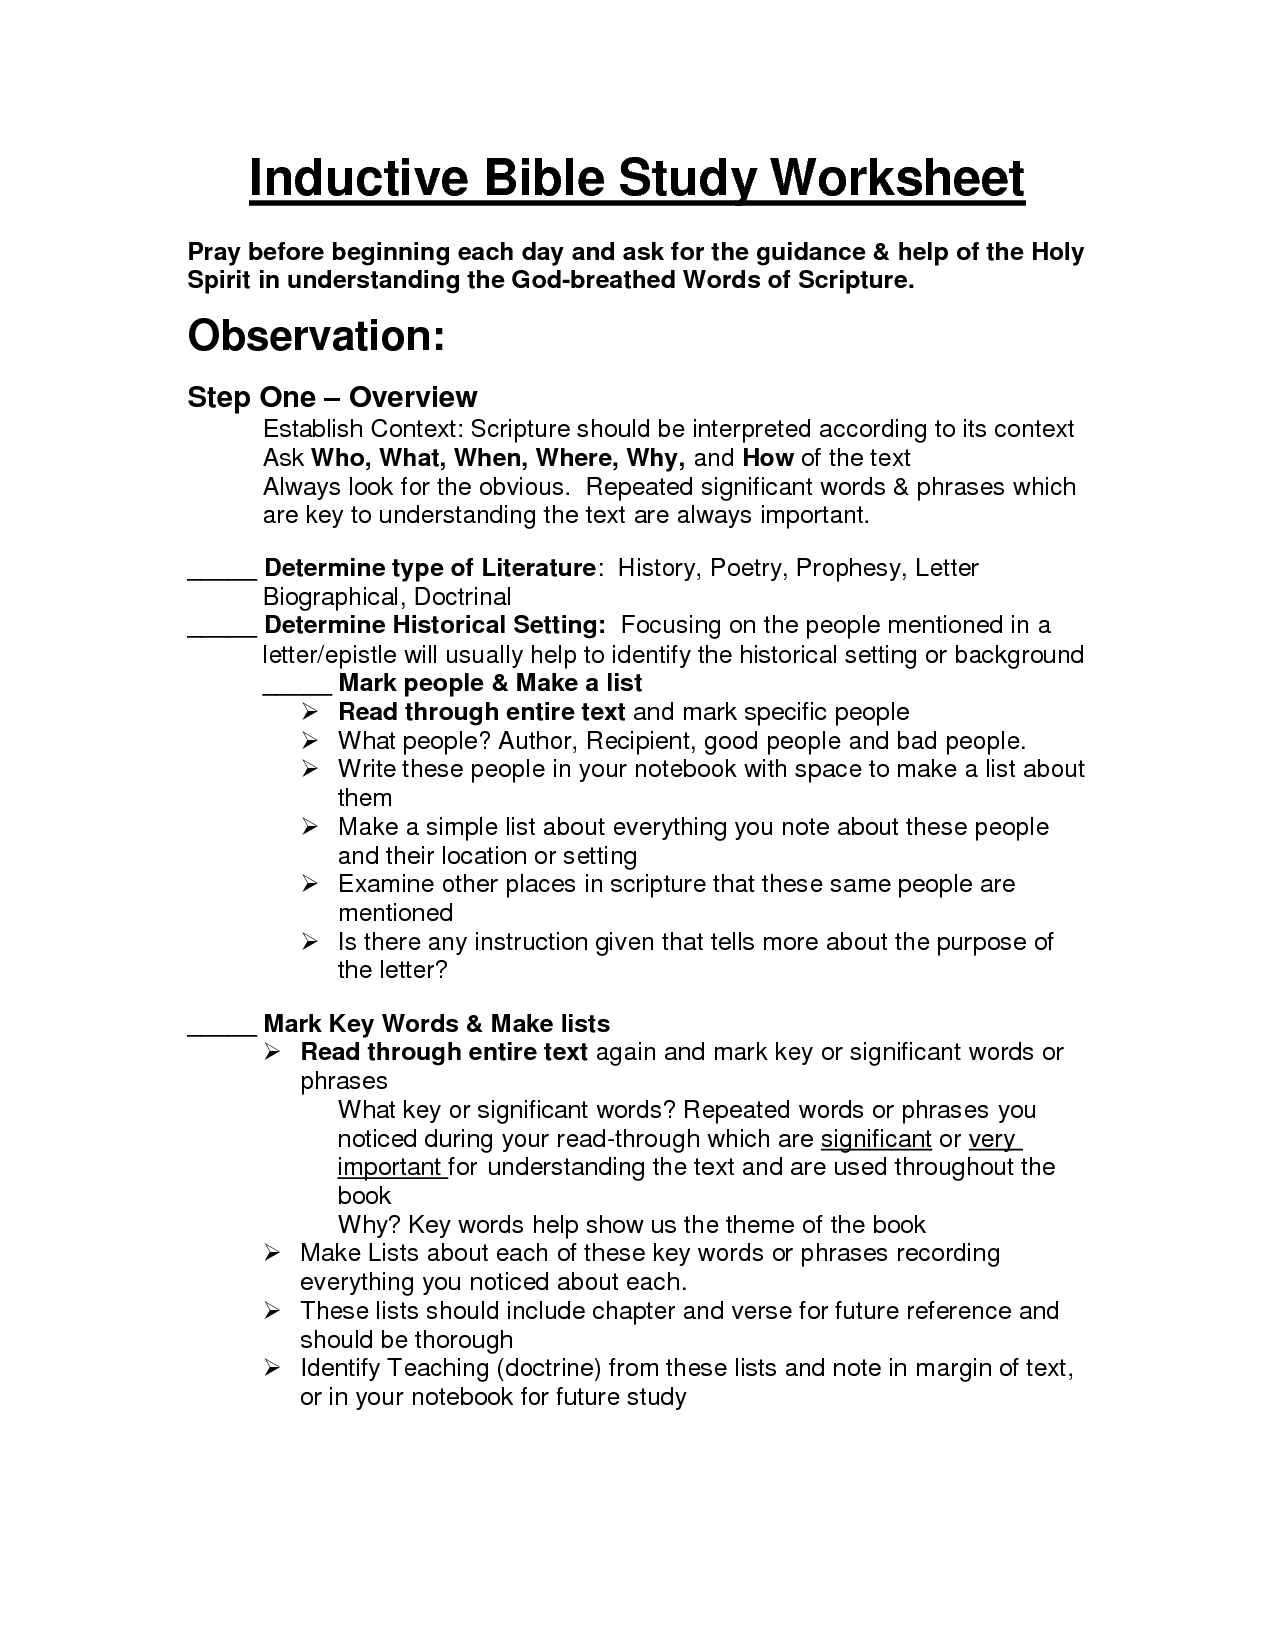 Worksheet Bible Study Worksheets study worksheets and bible studies on pinterest worksheet save learn more at img docstoccdn com